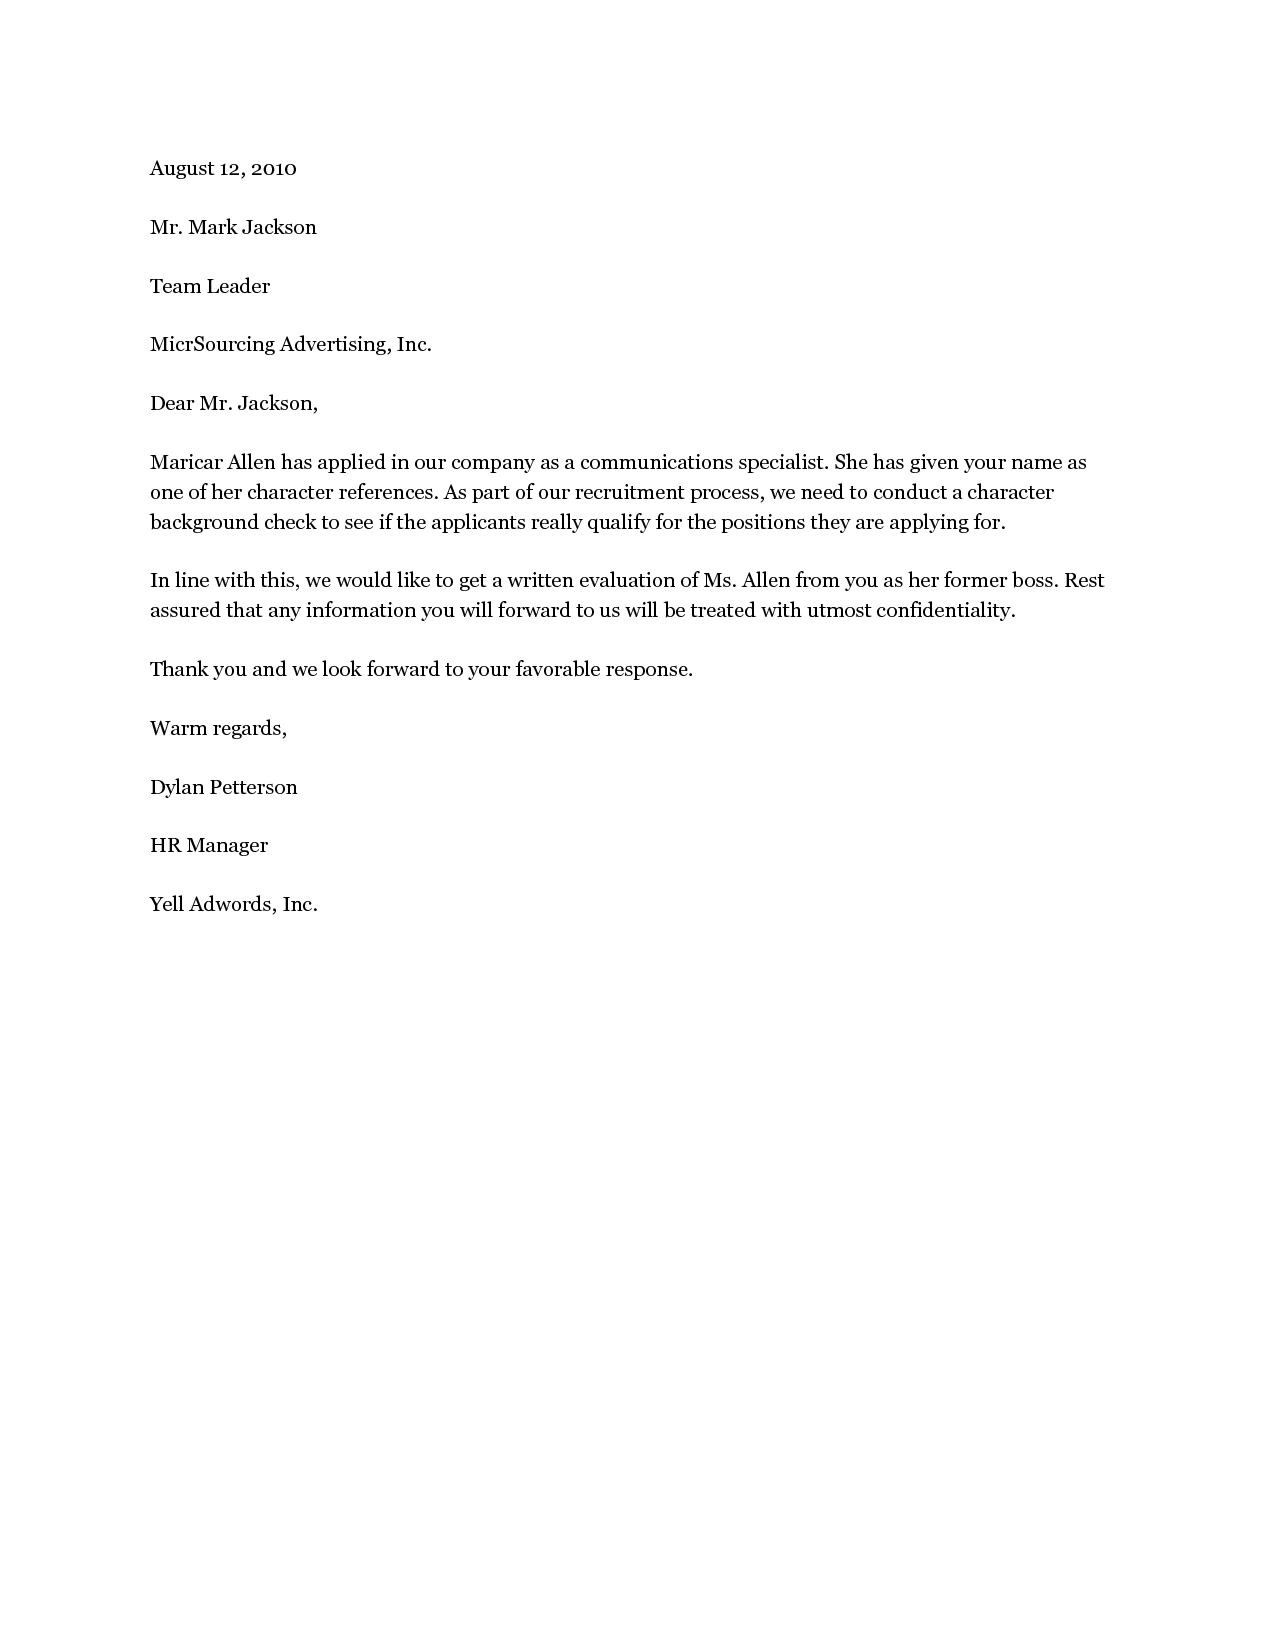 Character Letter Samples Best Business Template Recommendation